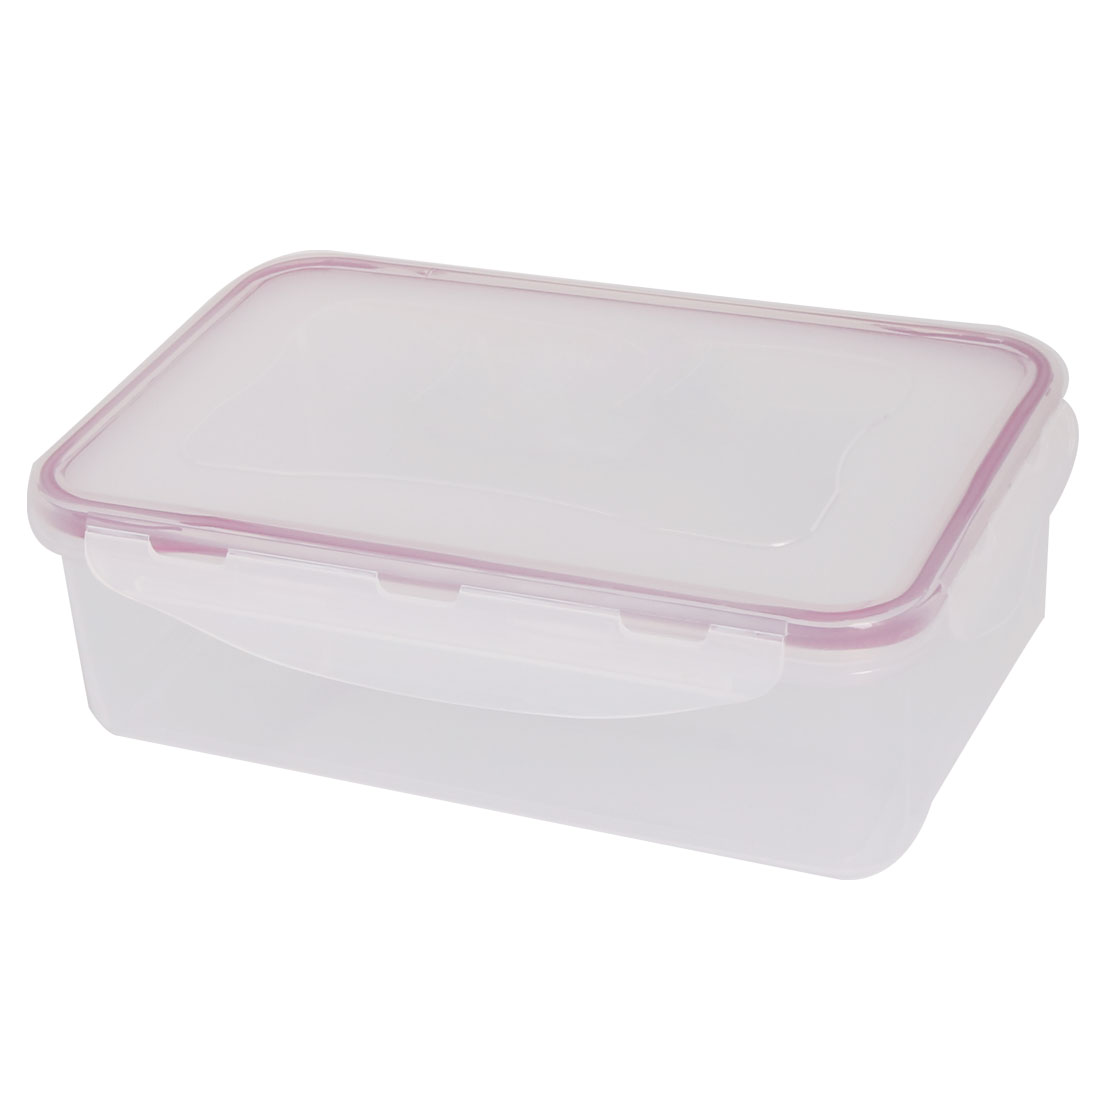 Household Kitchenware PP Rectangle Sealed Food Vegetable Fruit Storage Container 0.9L